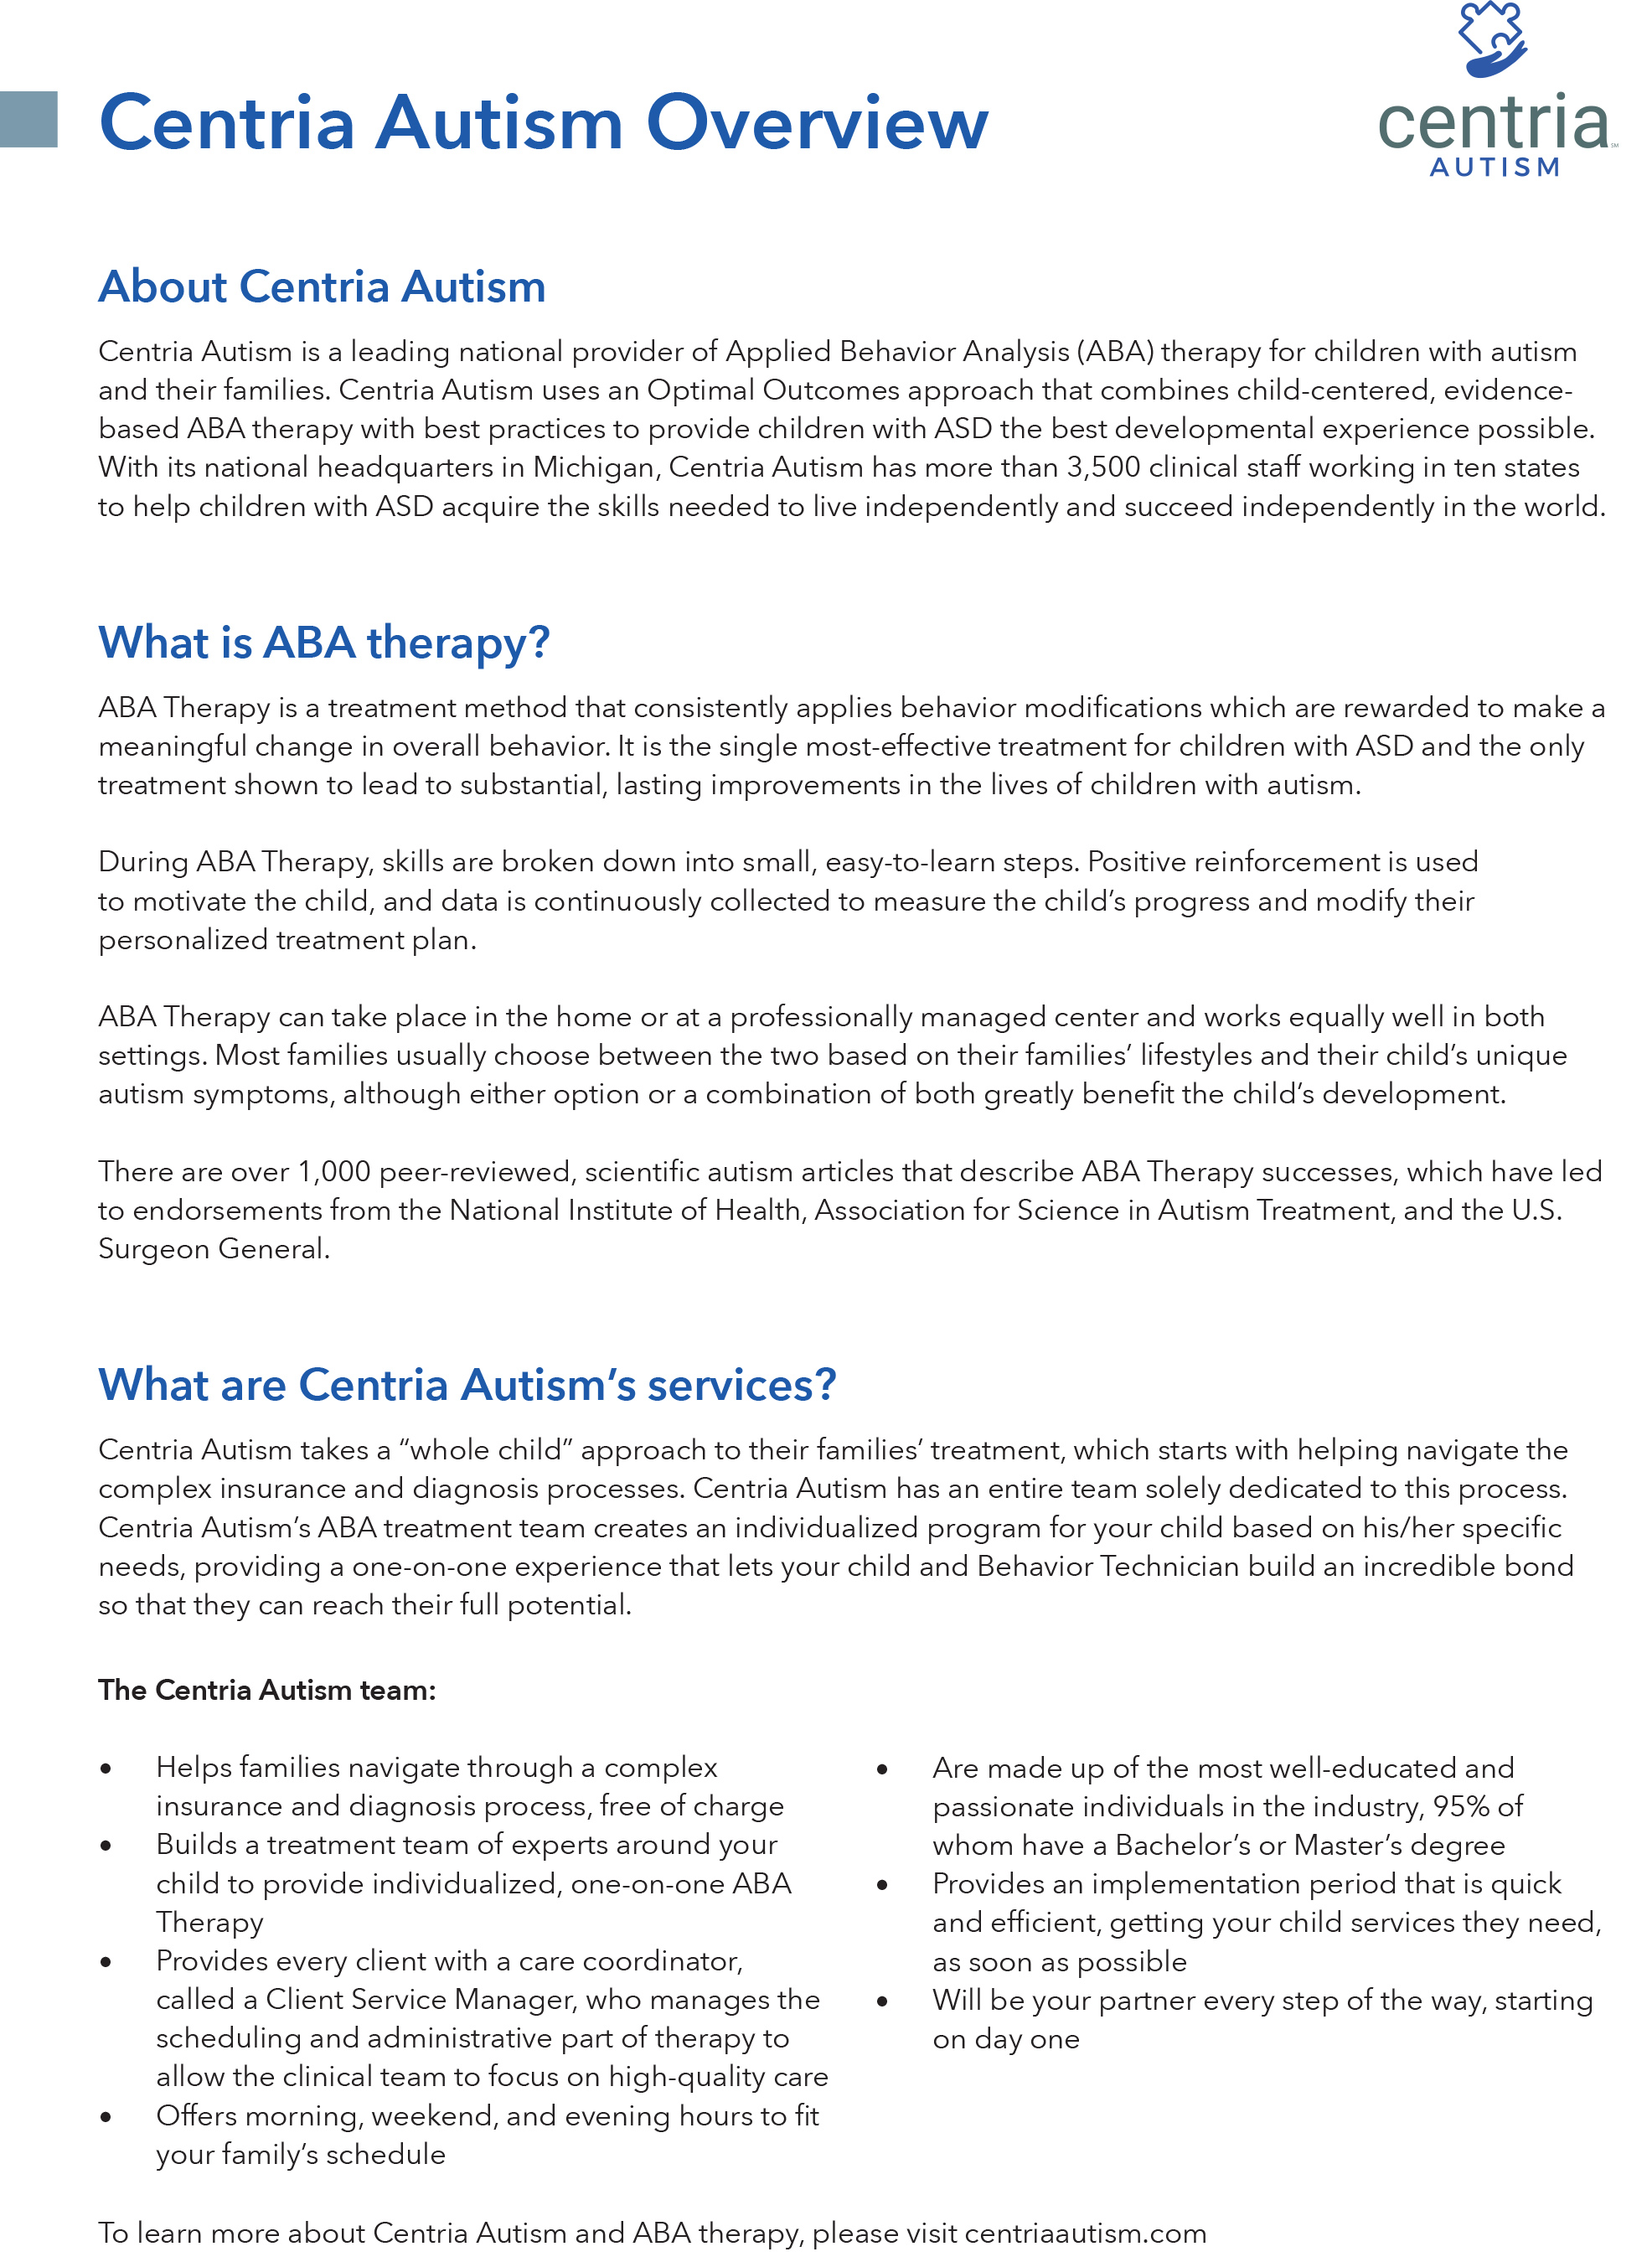 Aba Releases Findings And >> Treatment For Children With Autism Delayed By More Than One Year On